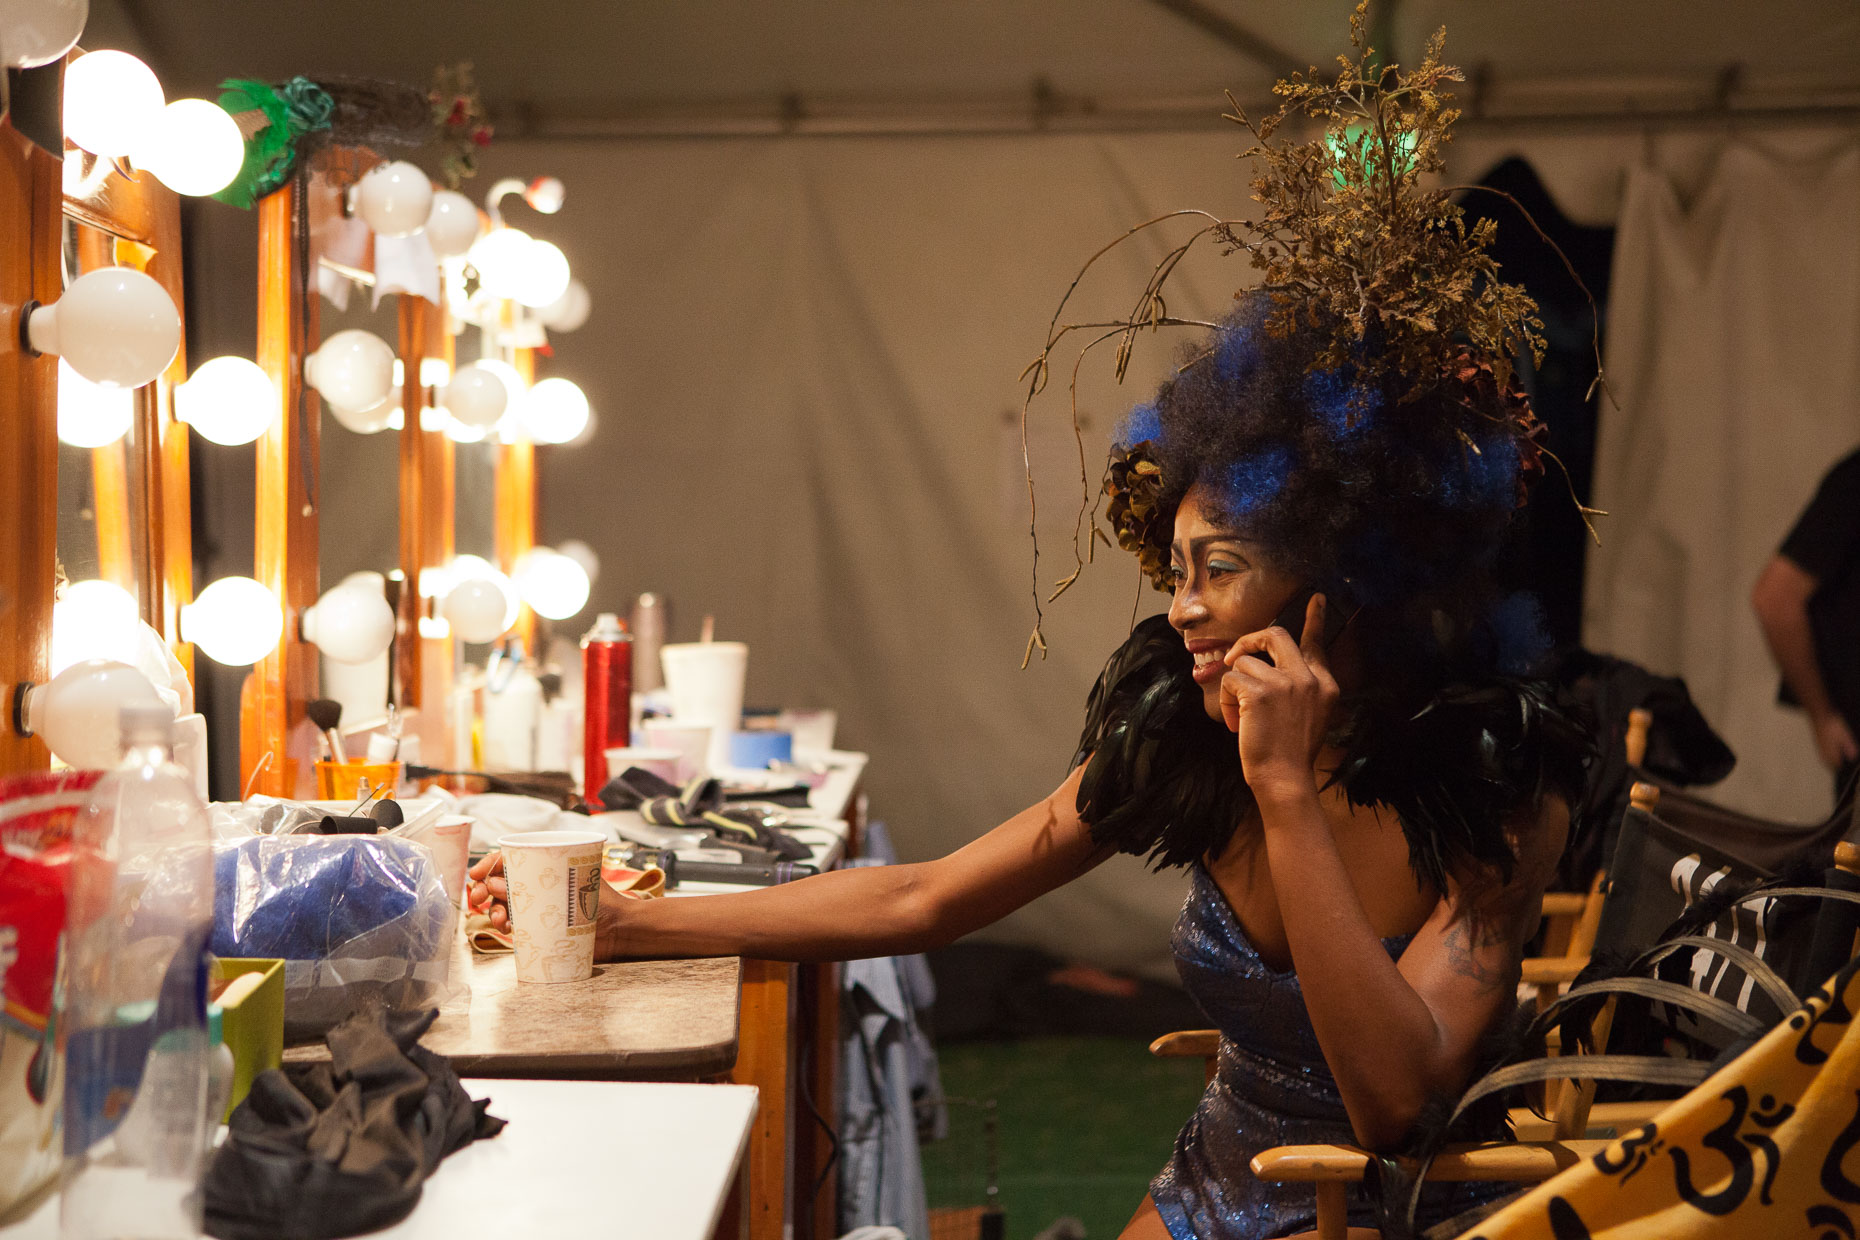 Performer talking on phone at makeup table at Cirque Berzerk circus performers, by David Zaitz